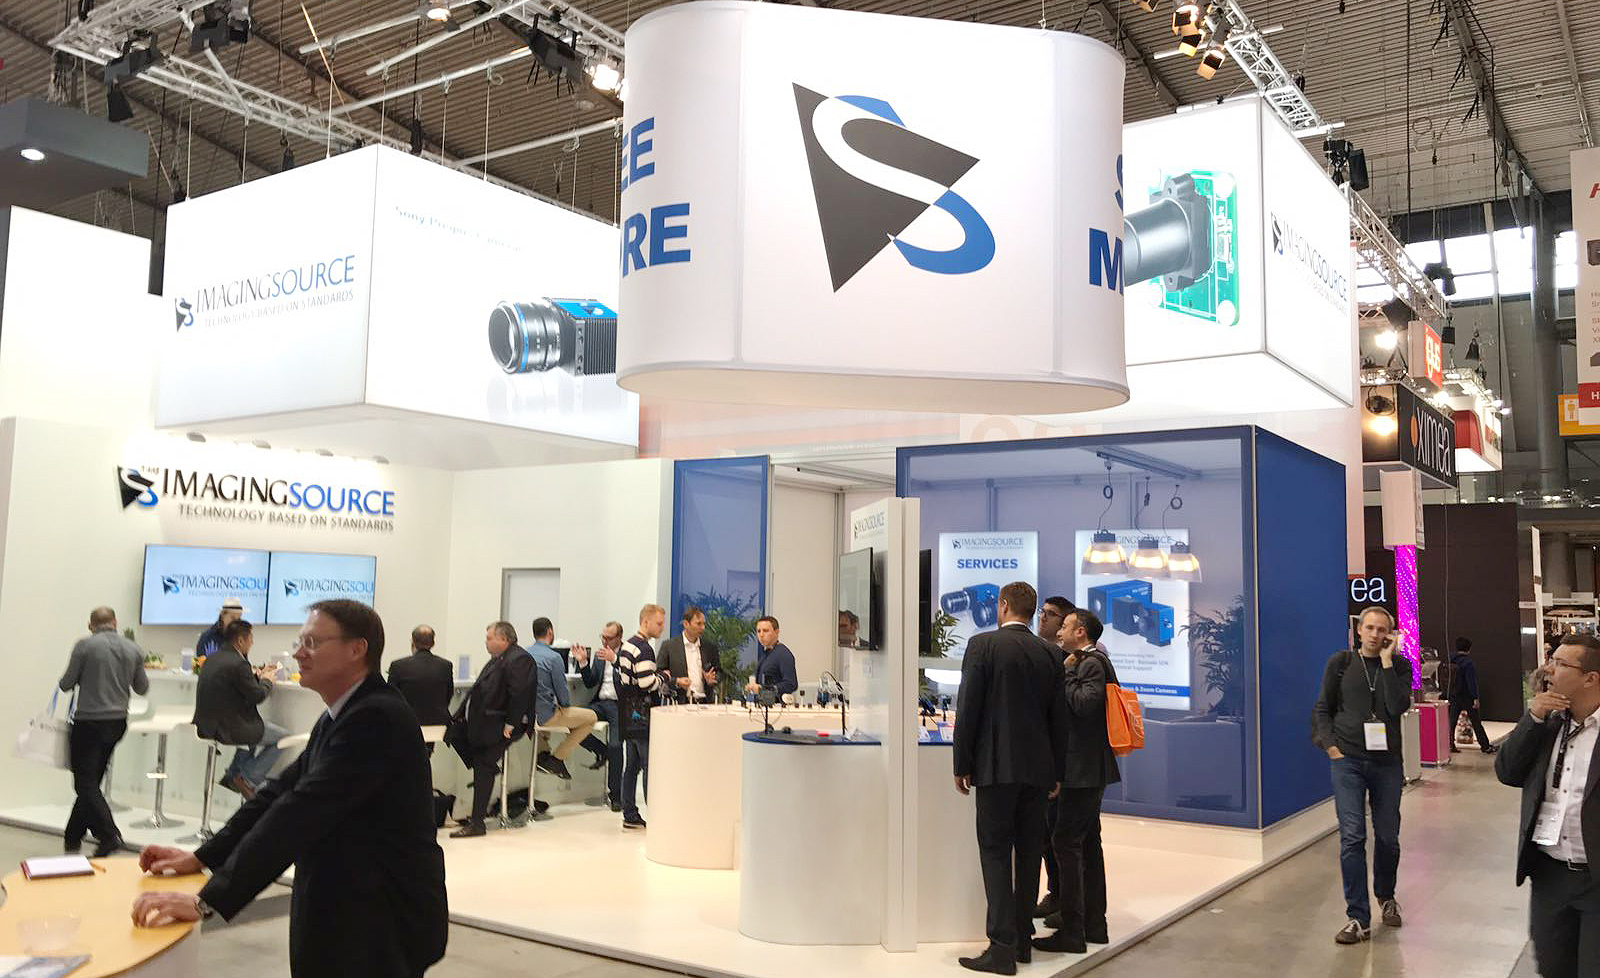 The Imaging Source at VISION 2016